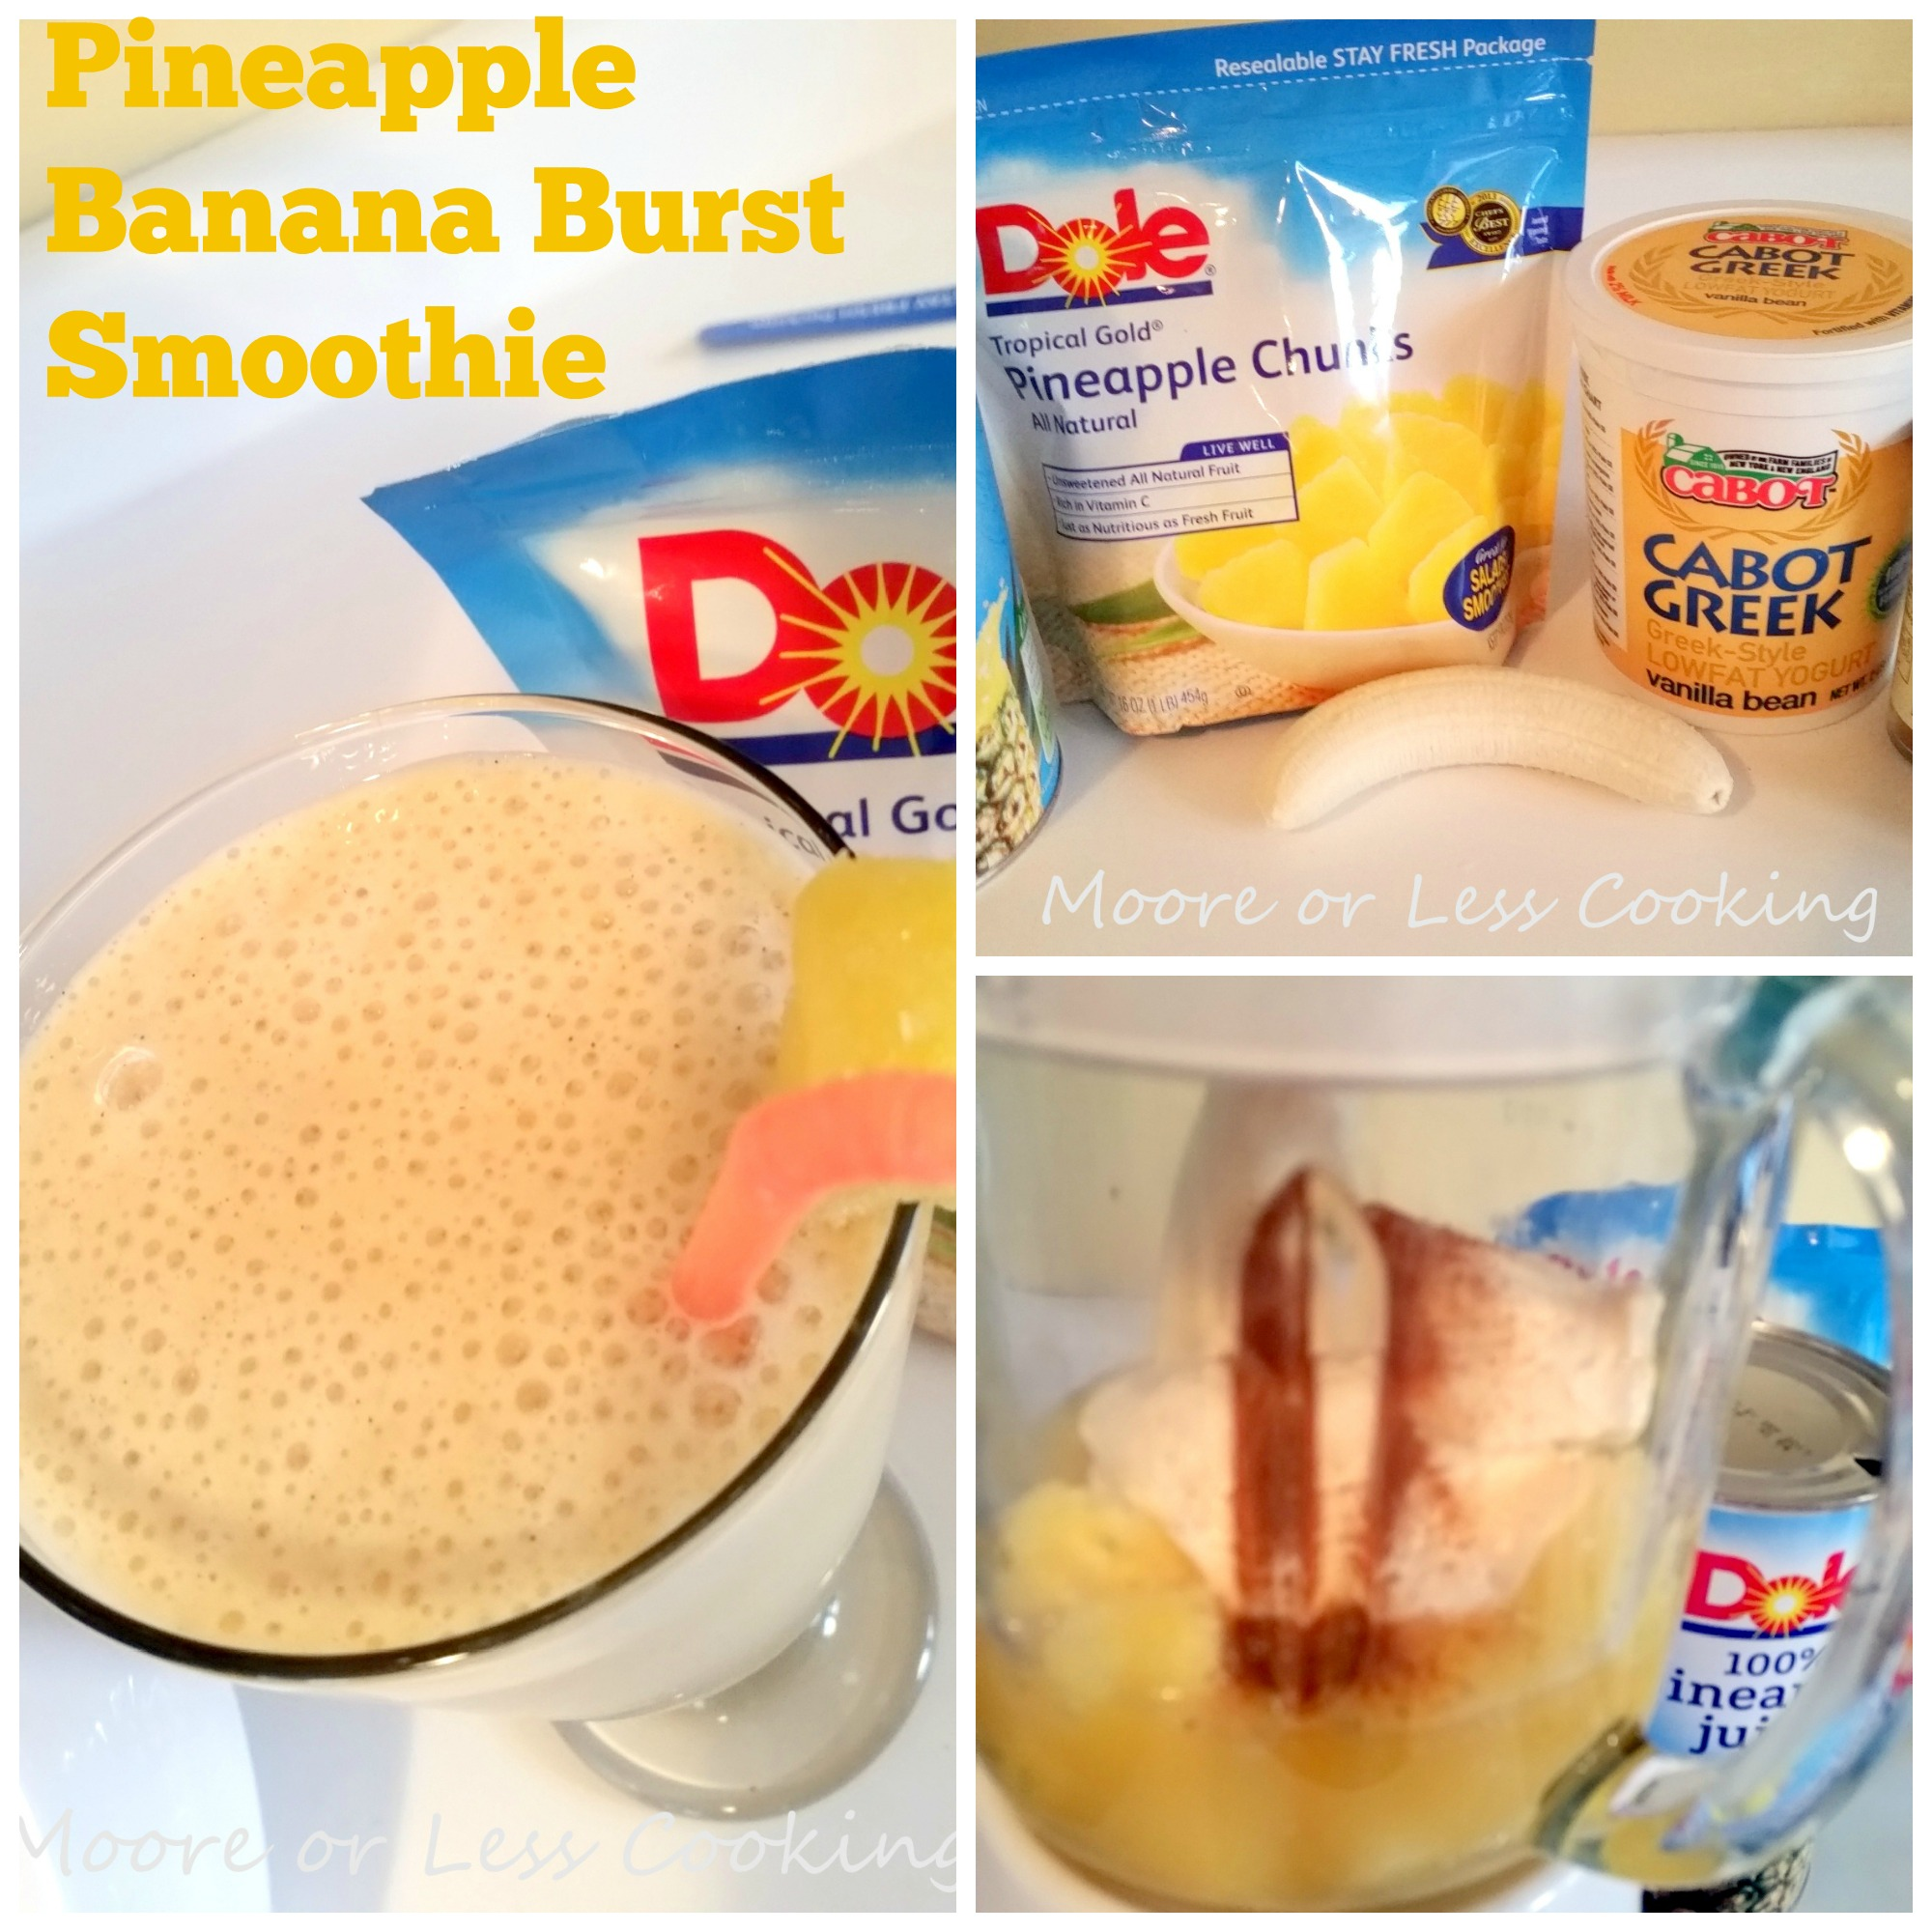 Pineapple Banana Burst Smoothie